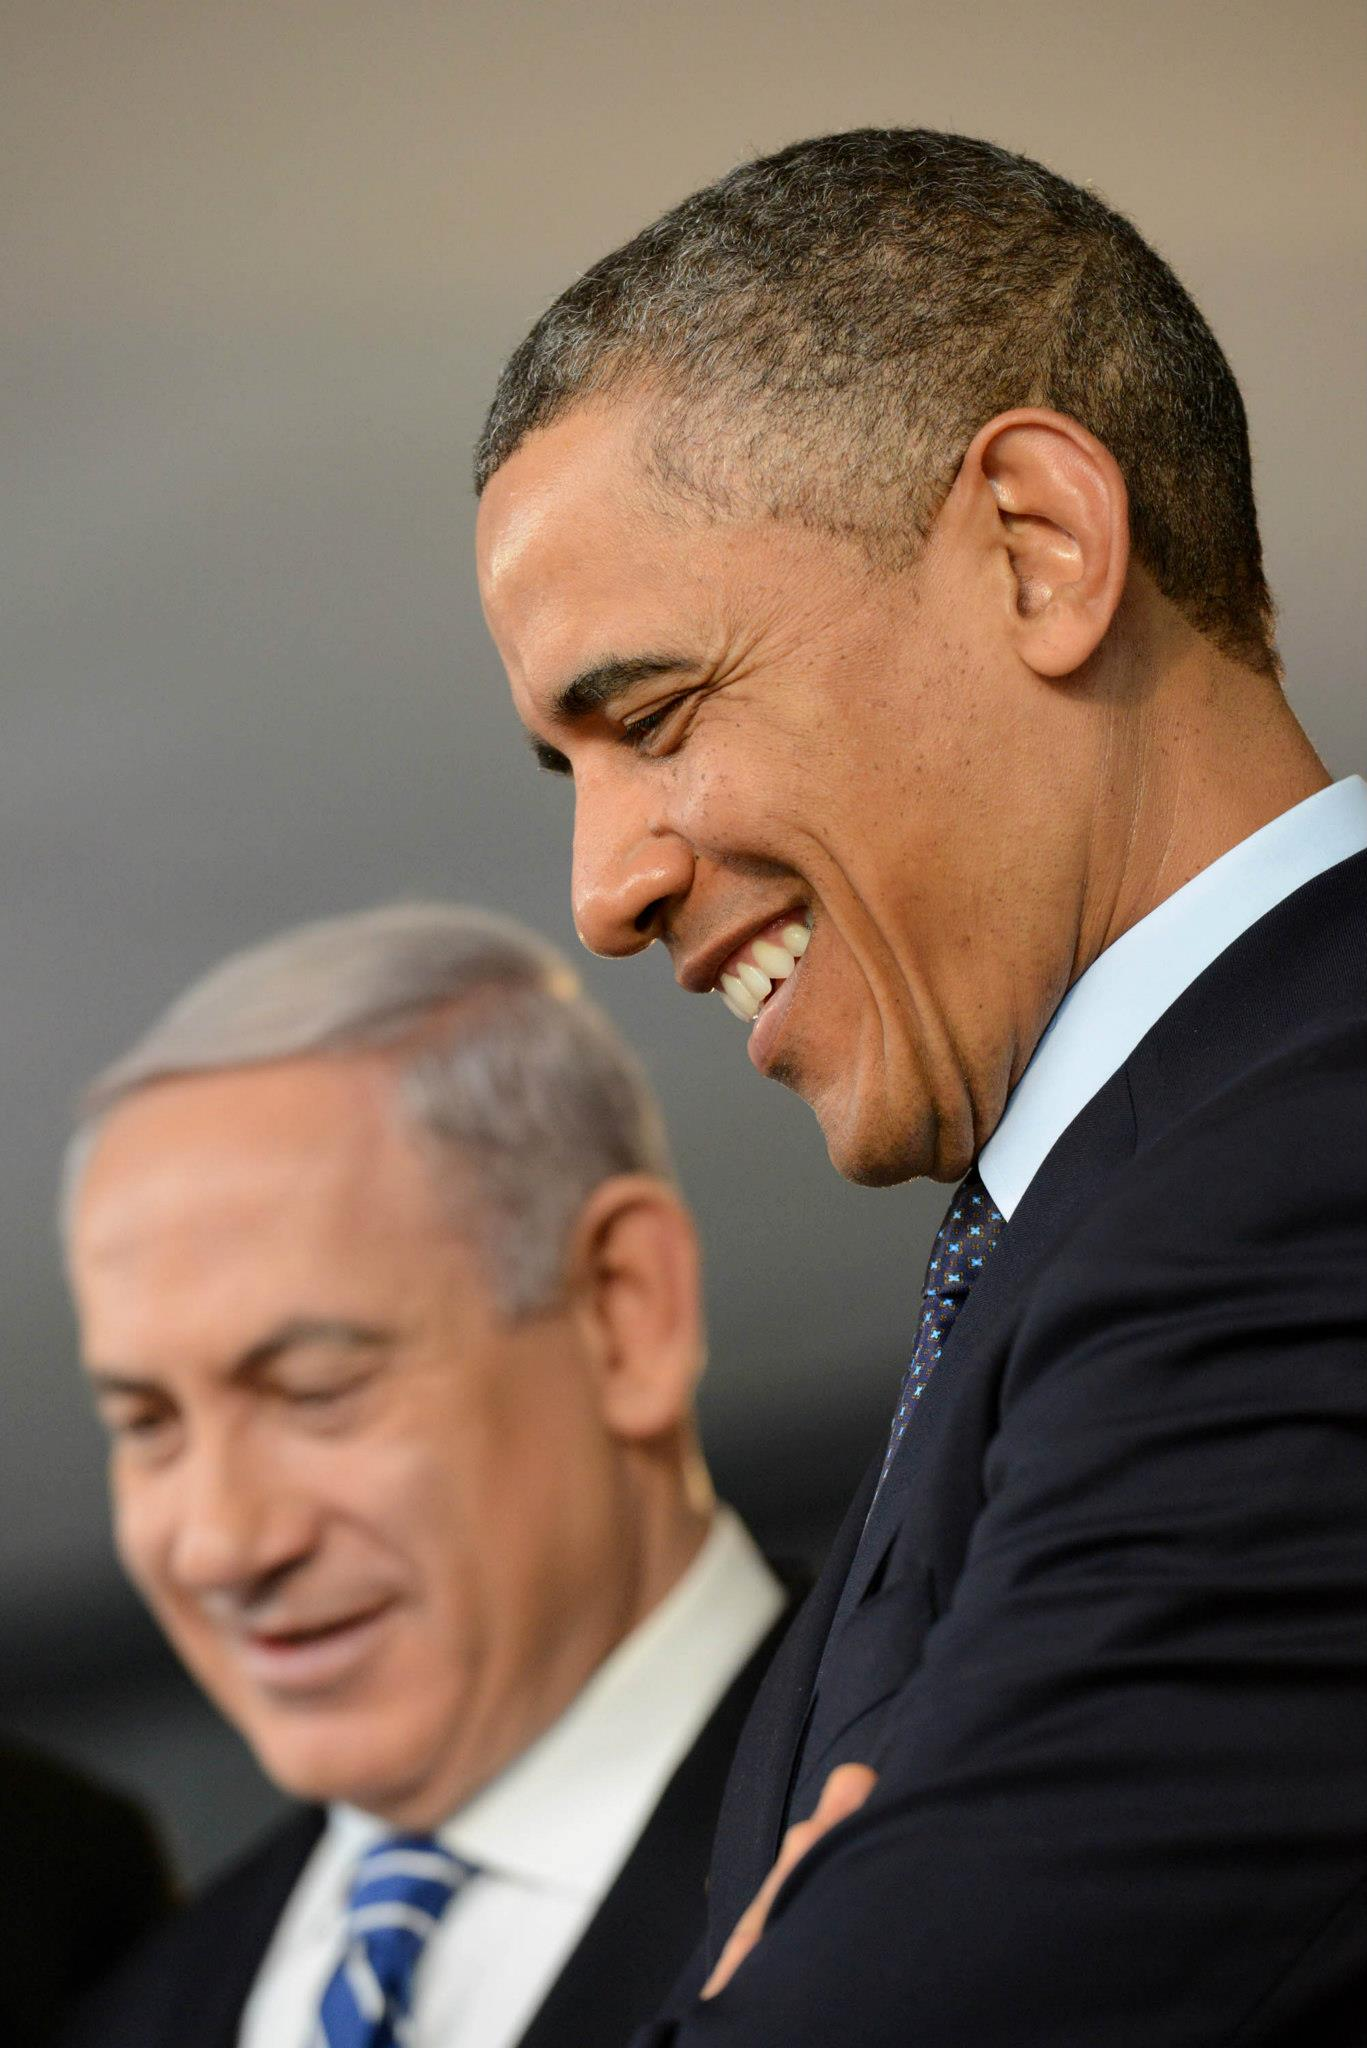 Photos of Netanyahu and Obama in Israel